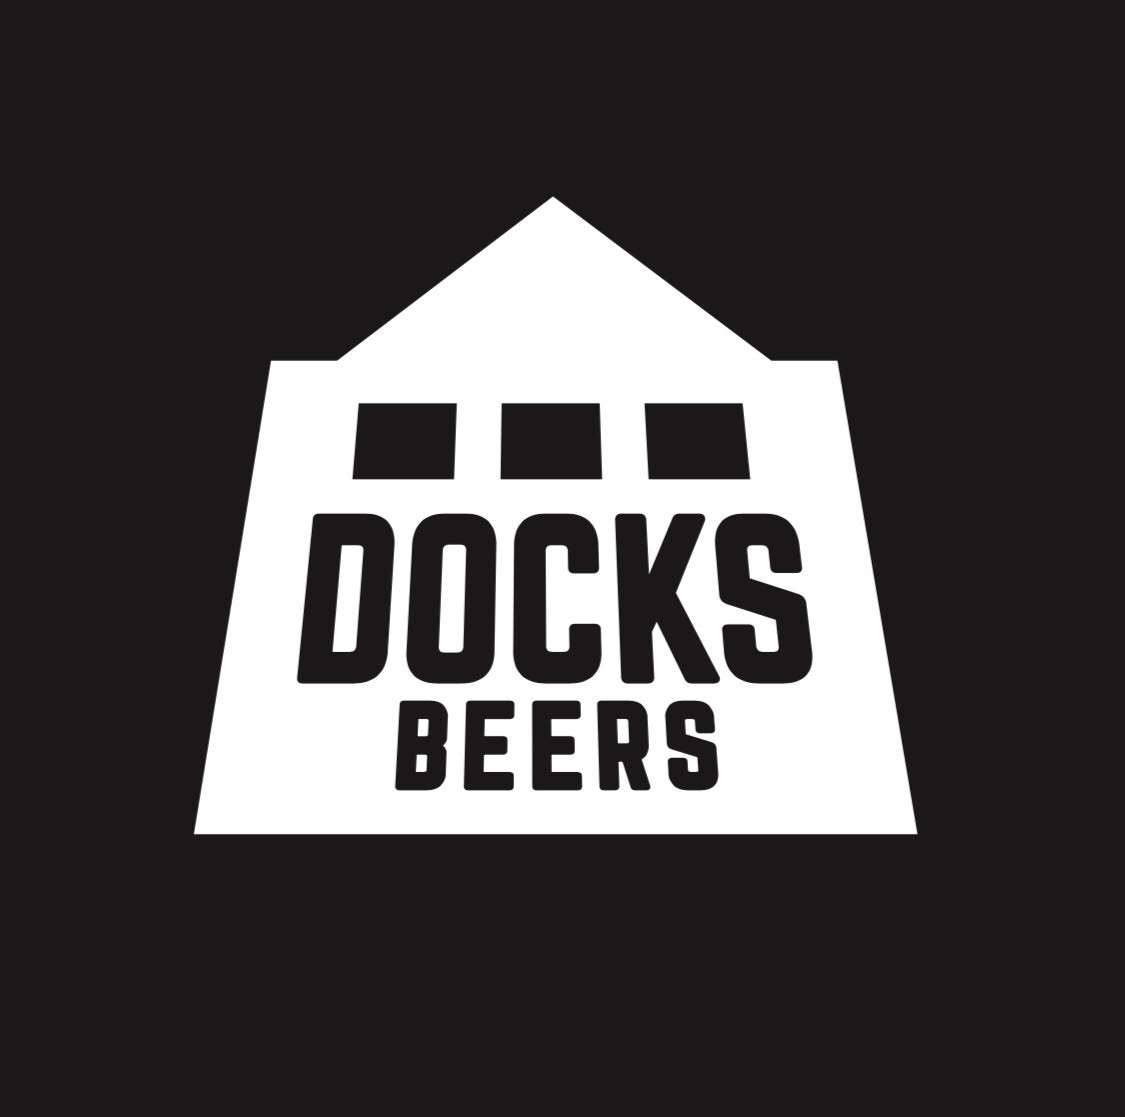 Axholme Brewing Launches Docks Beers and Opens New Brewery | Brewbound